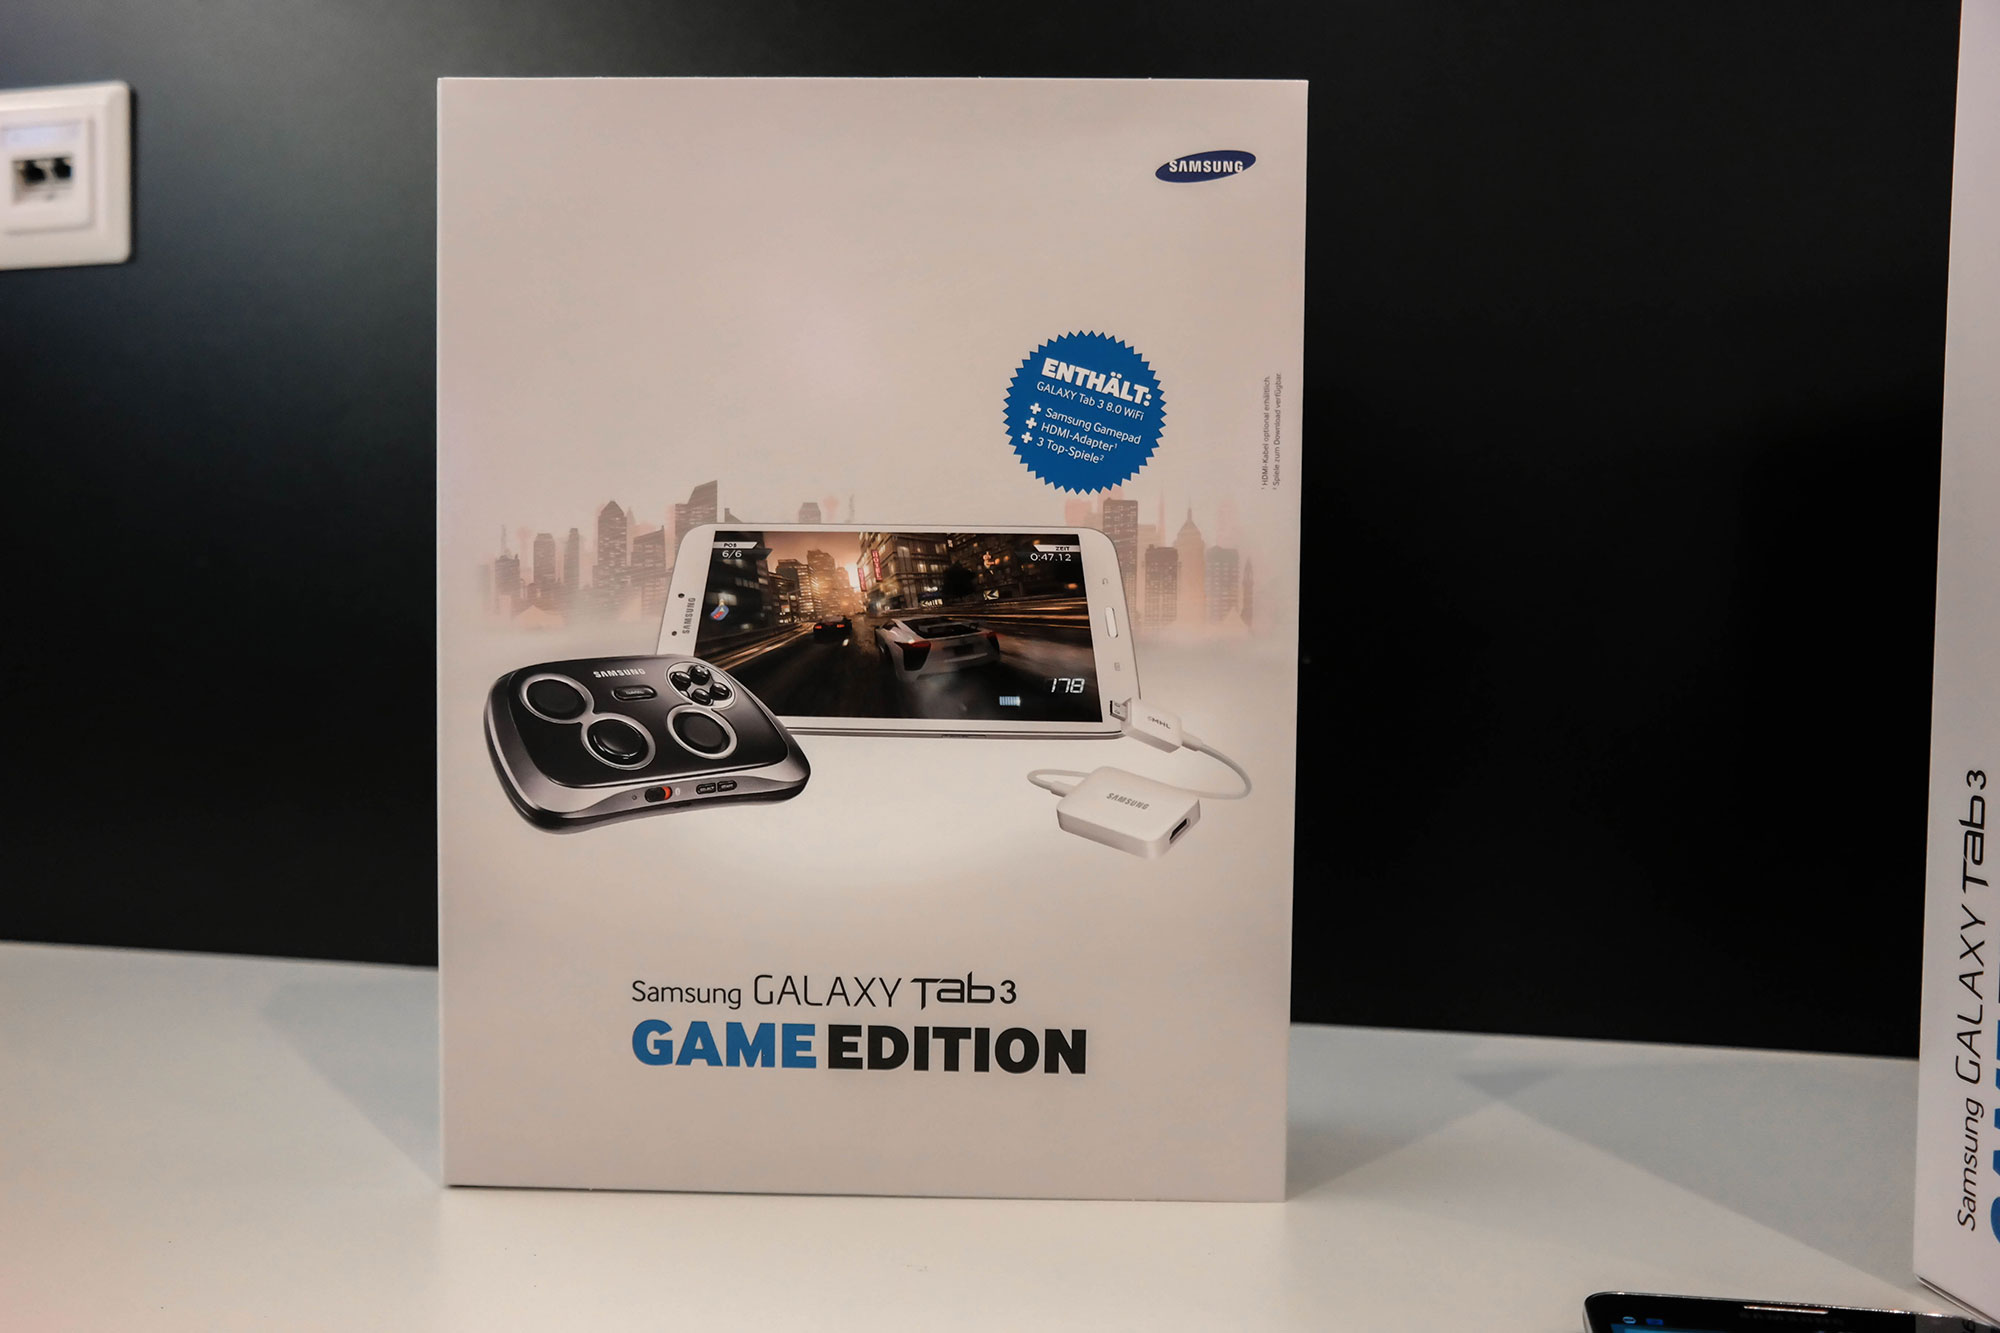 Samsung Galaxy Tab 3 Game Edition – Bundle aus Galaxy Tab 3 & GamePad kommt